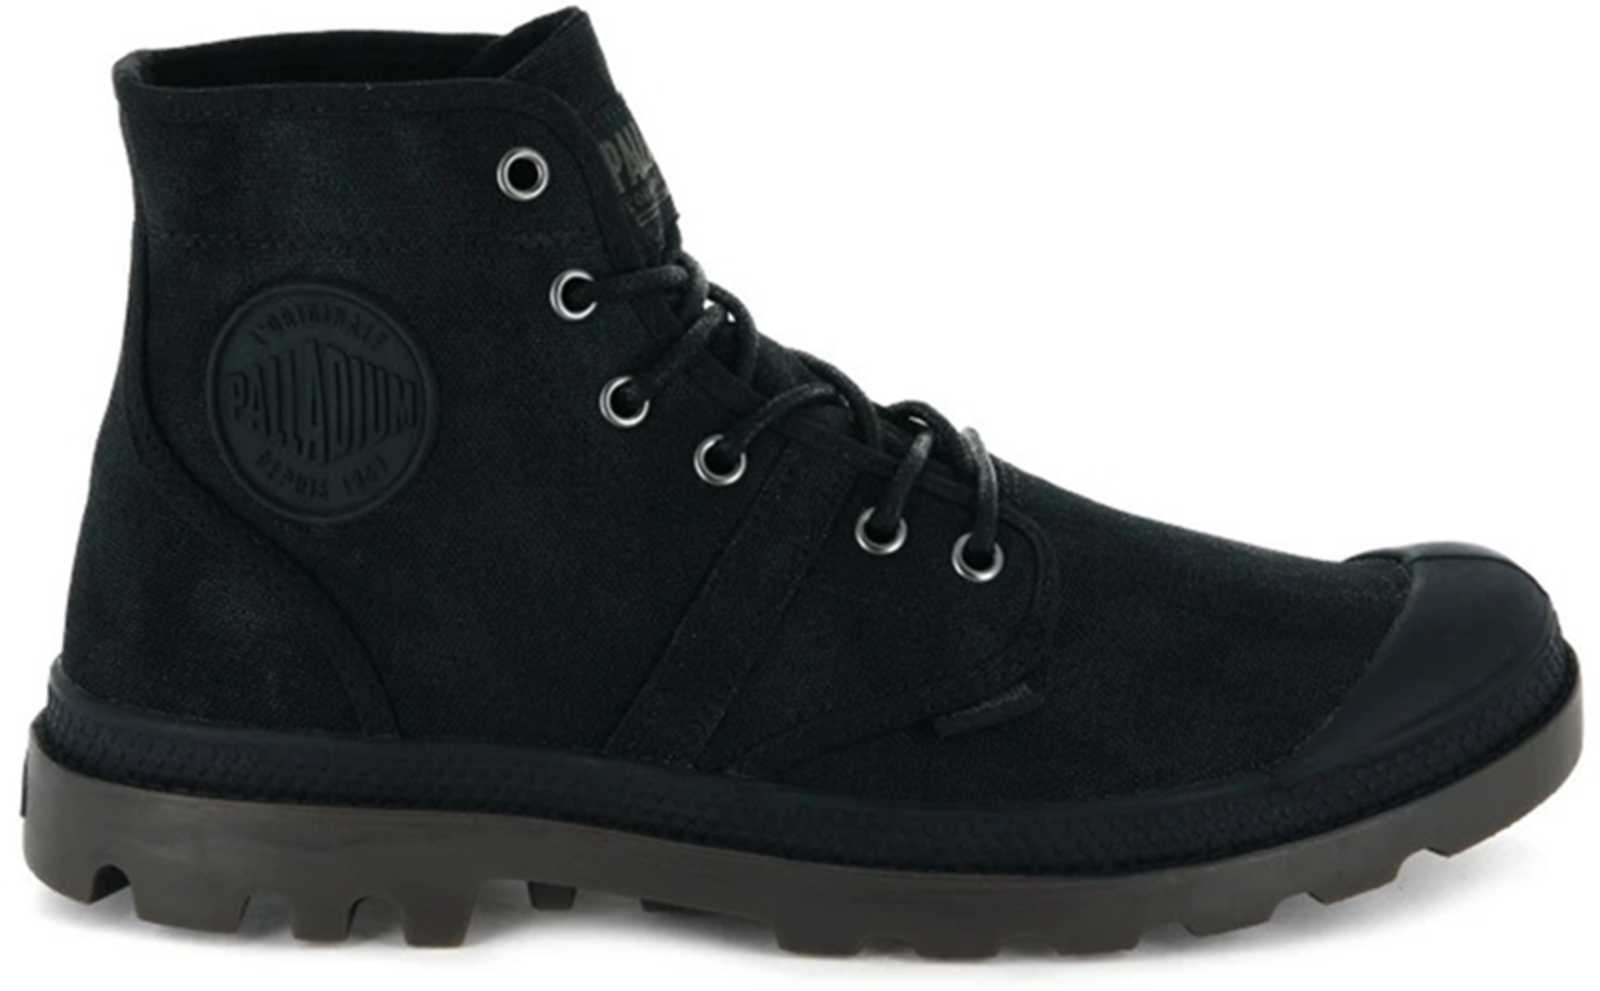 Palladium Pallabrouse Wax Canvas Boots